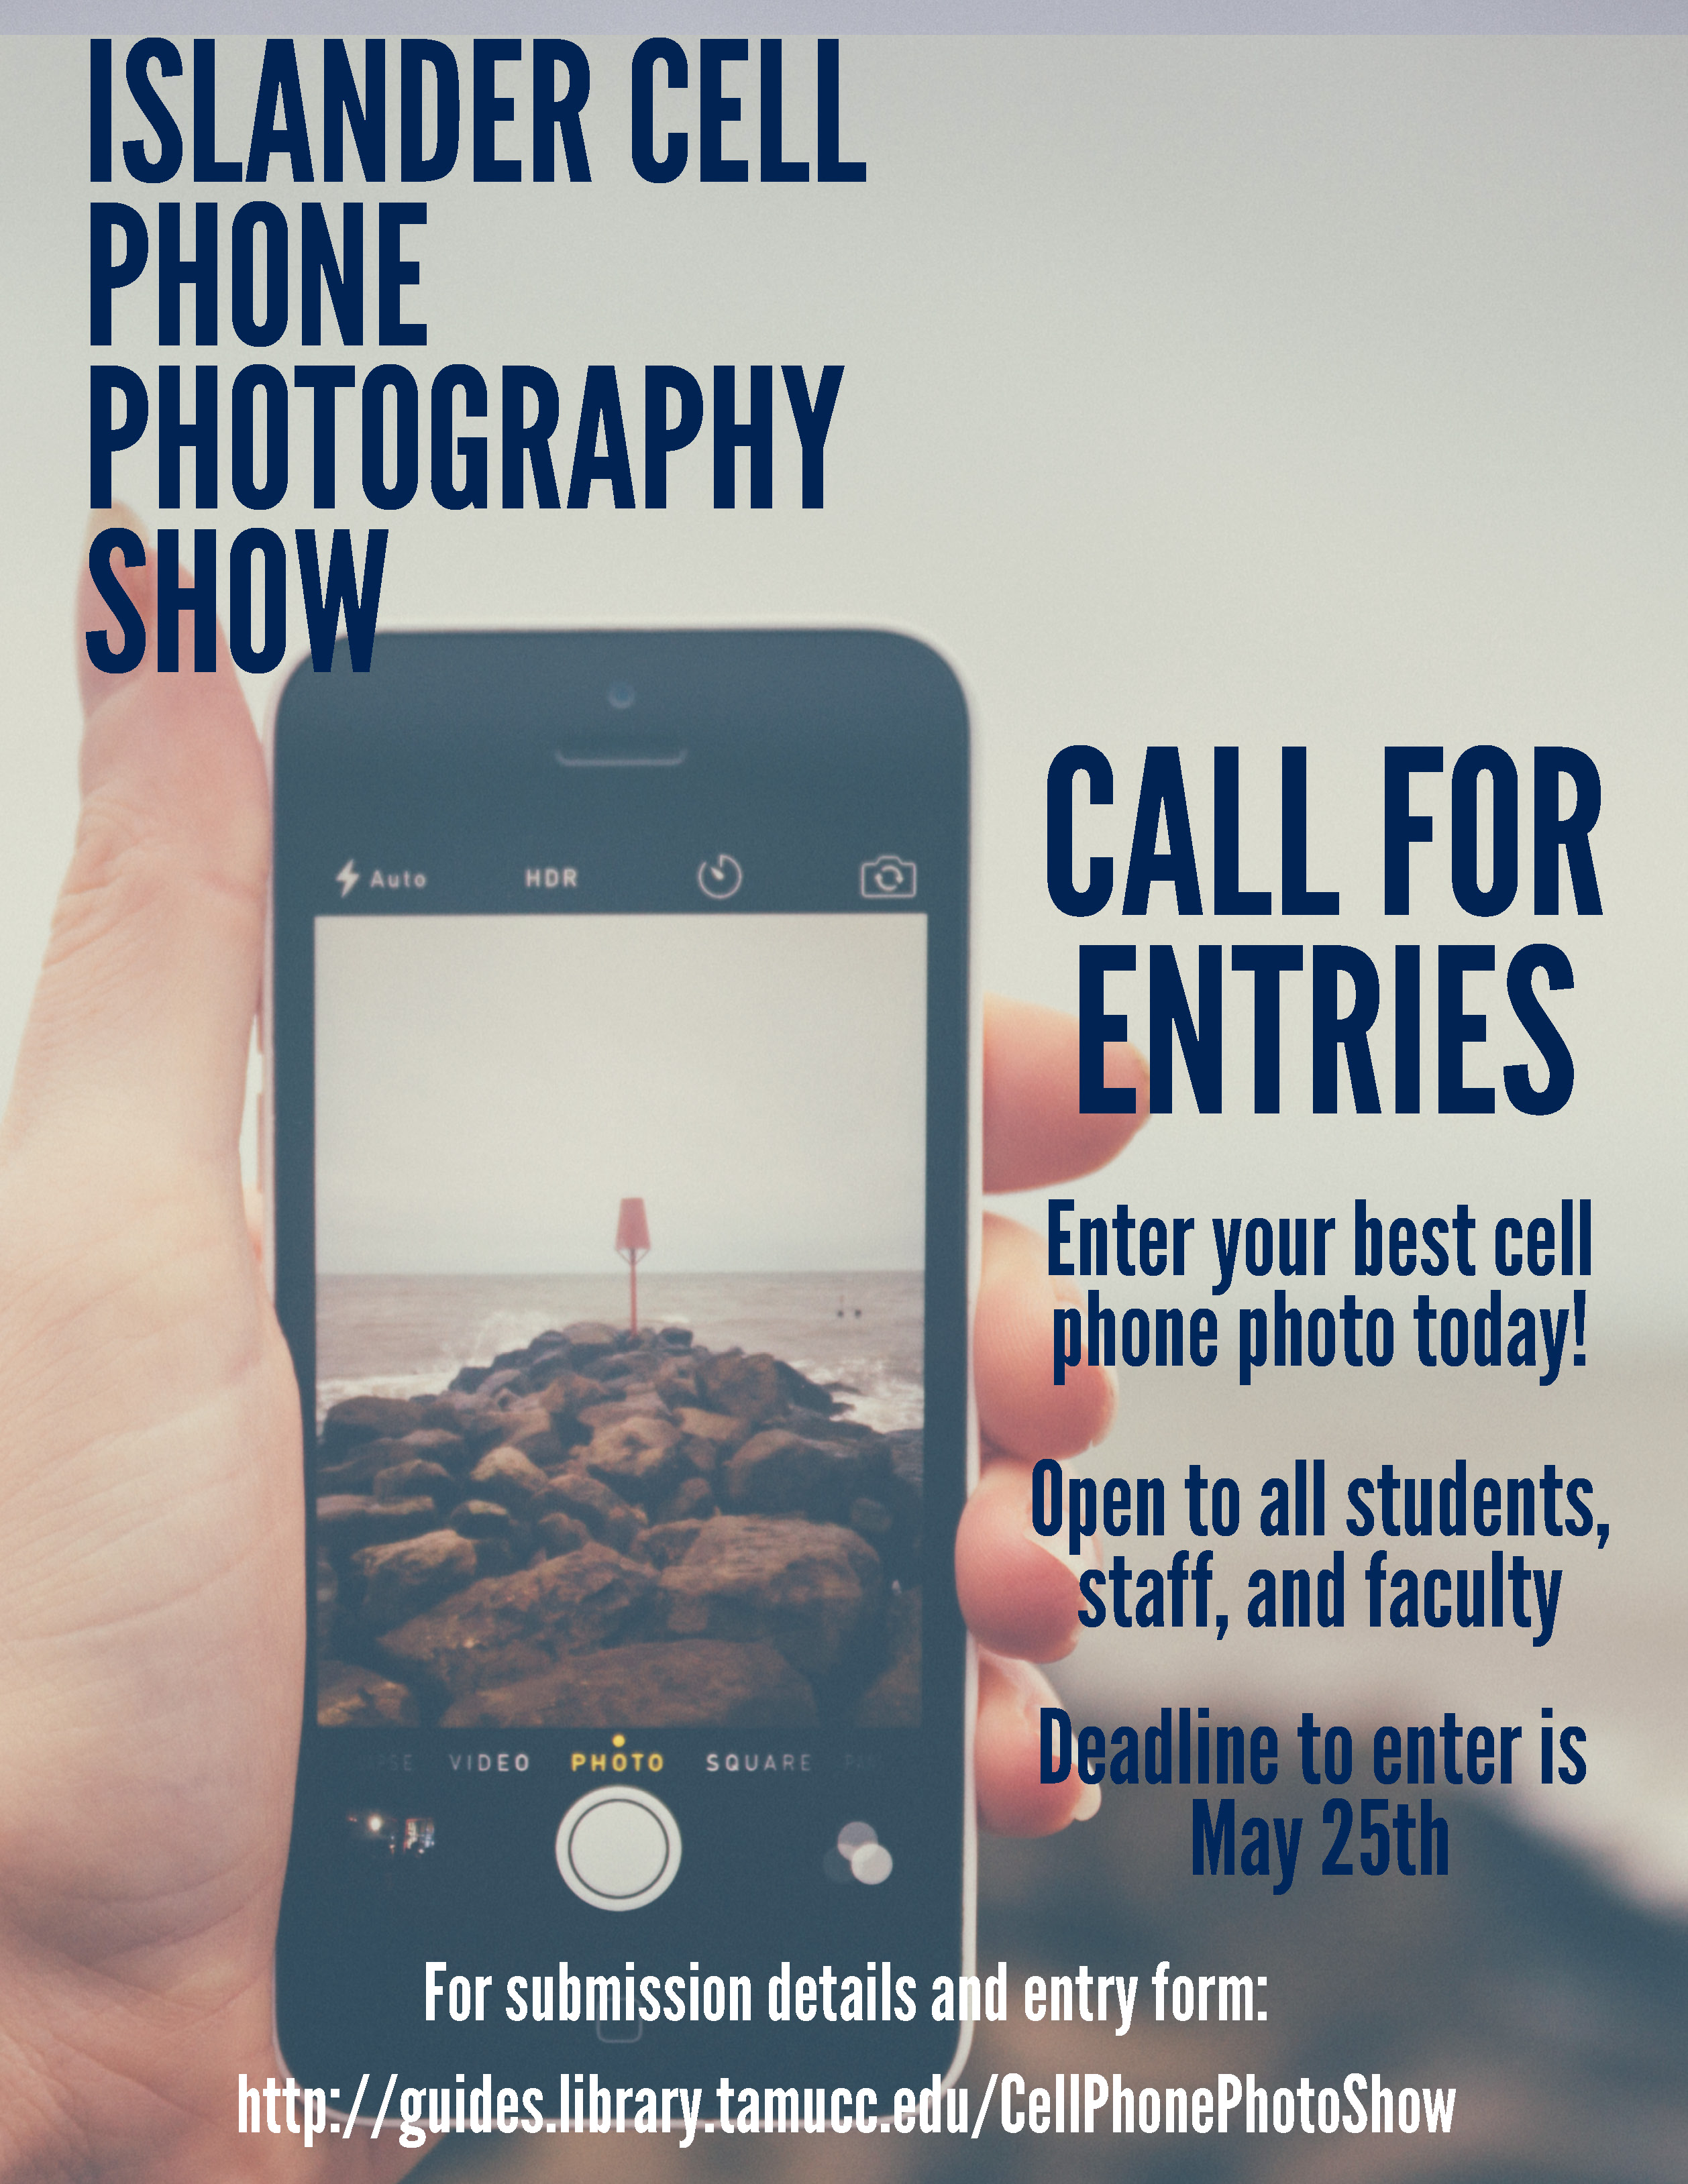 Islander Cell Phone Photography Show Call for Entries